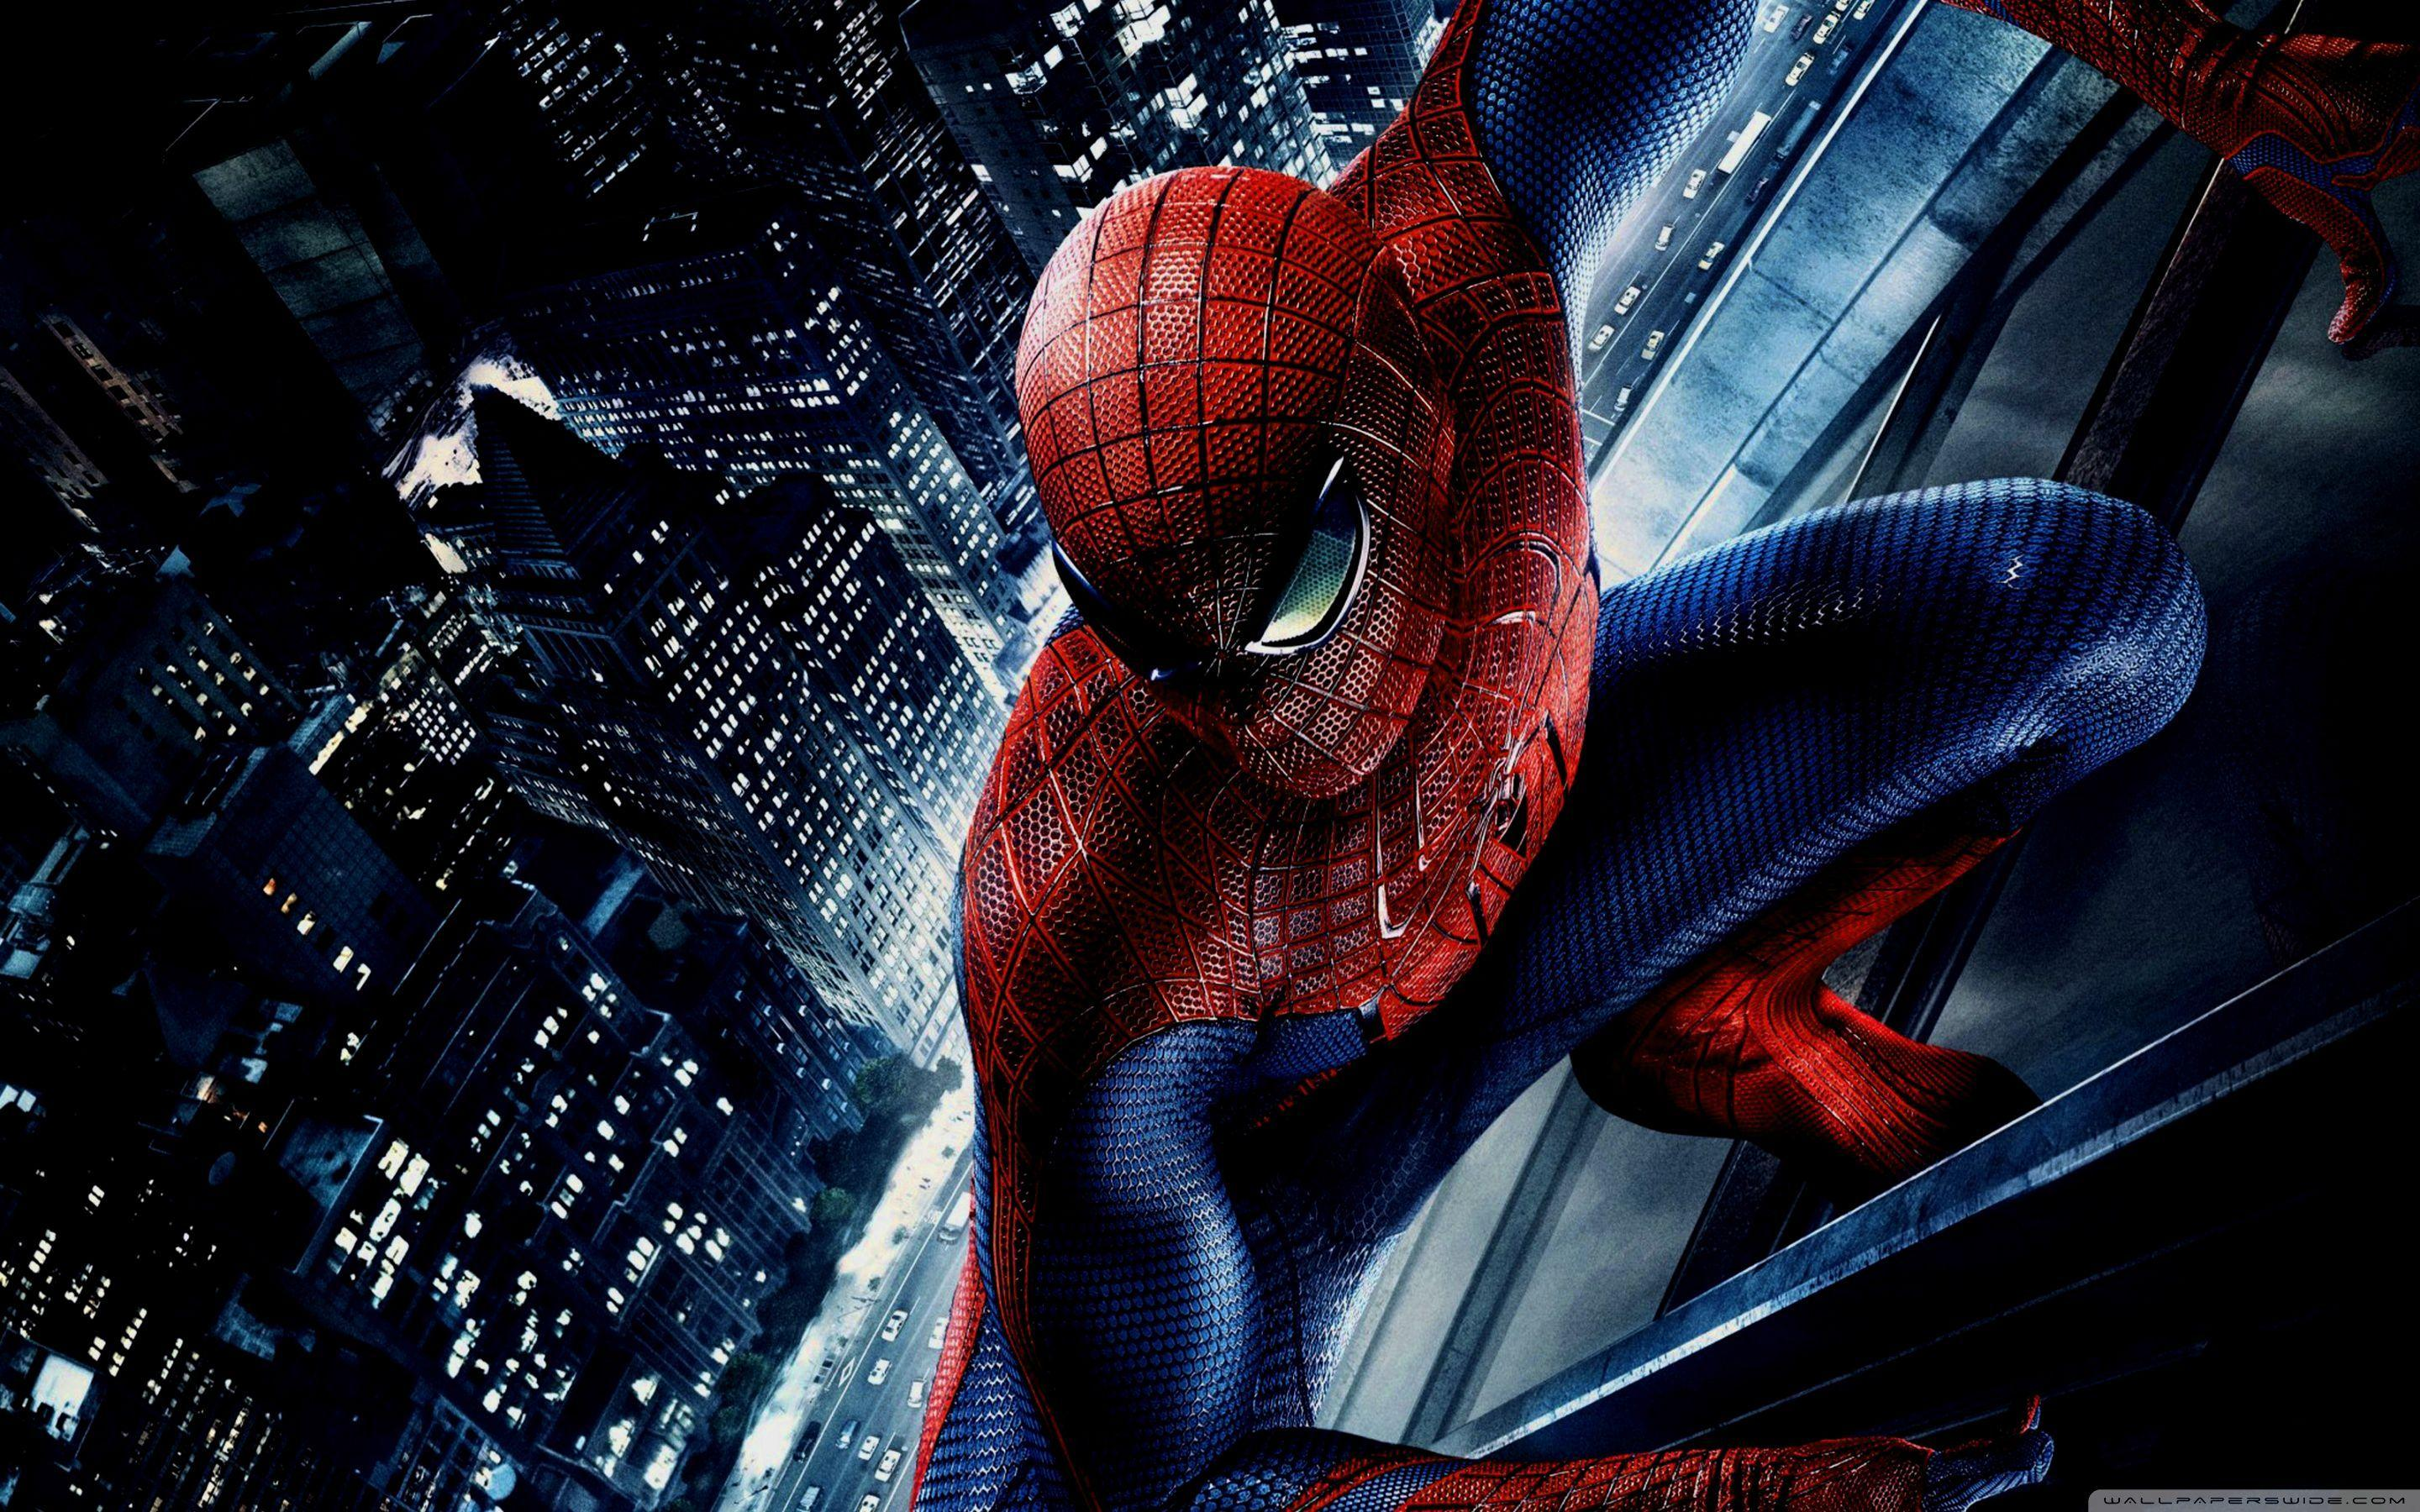 Spiderman Hd Wallpapers Desktop